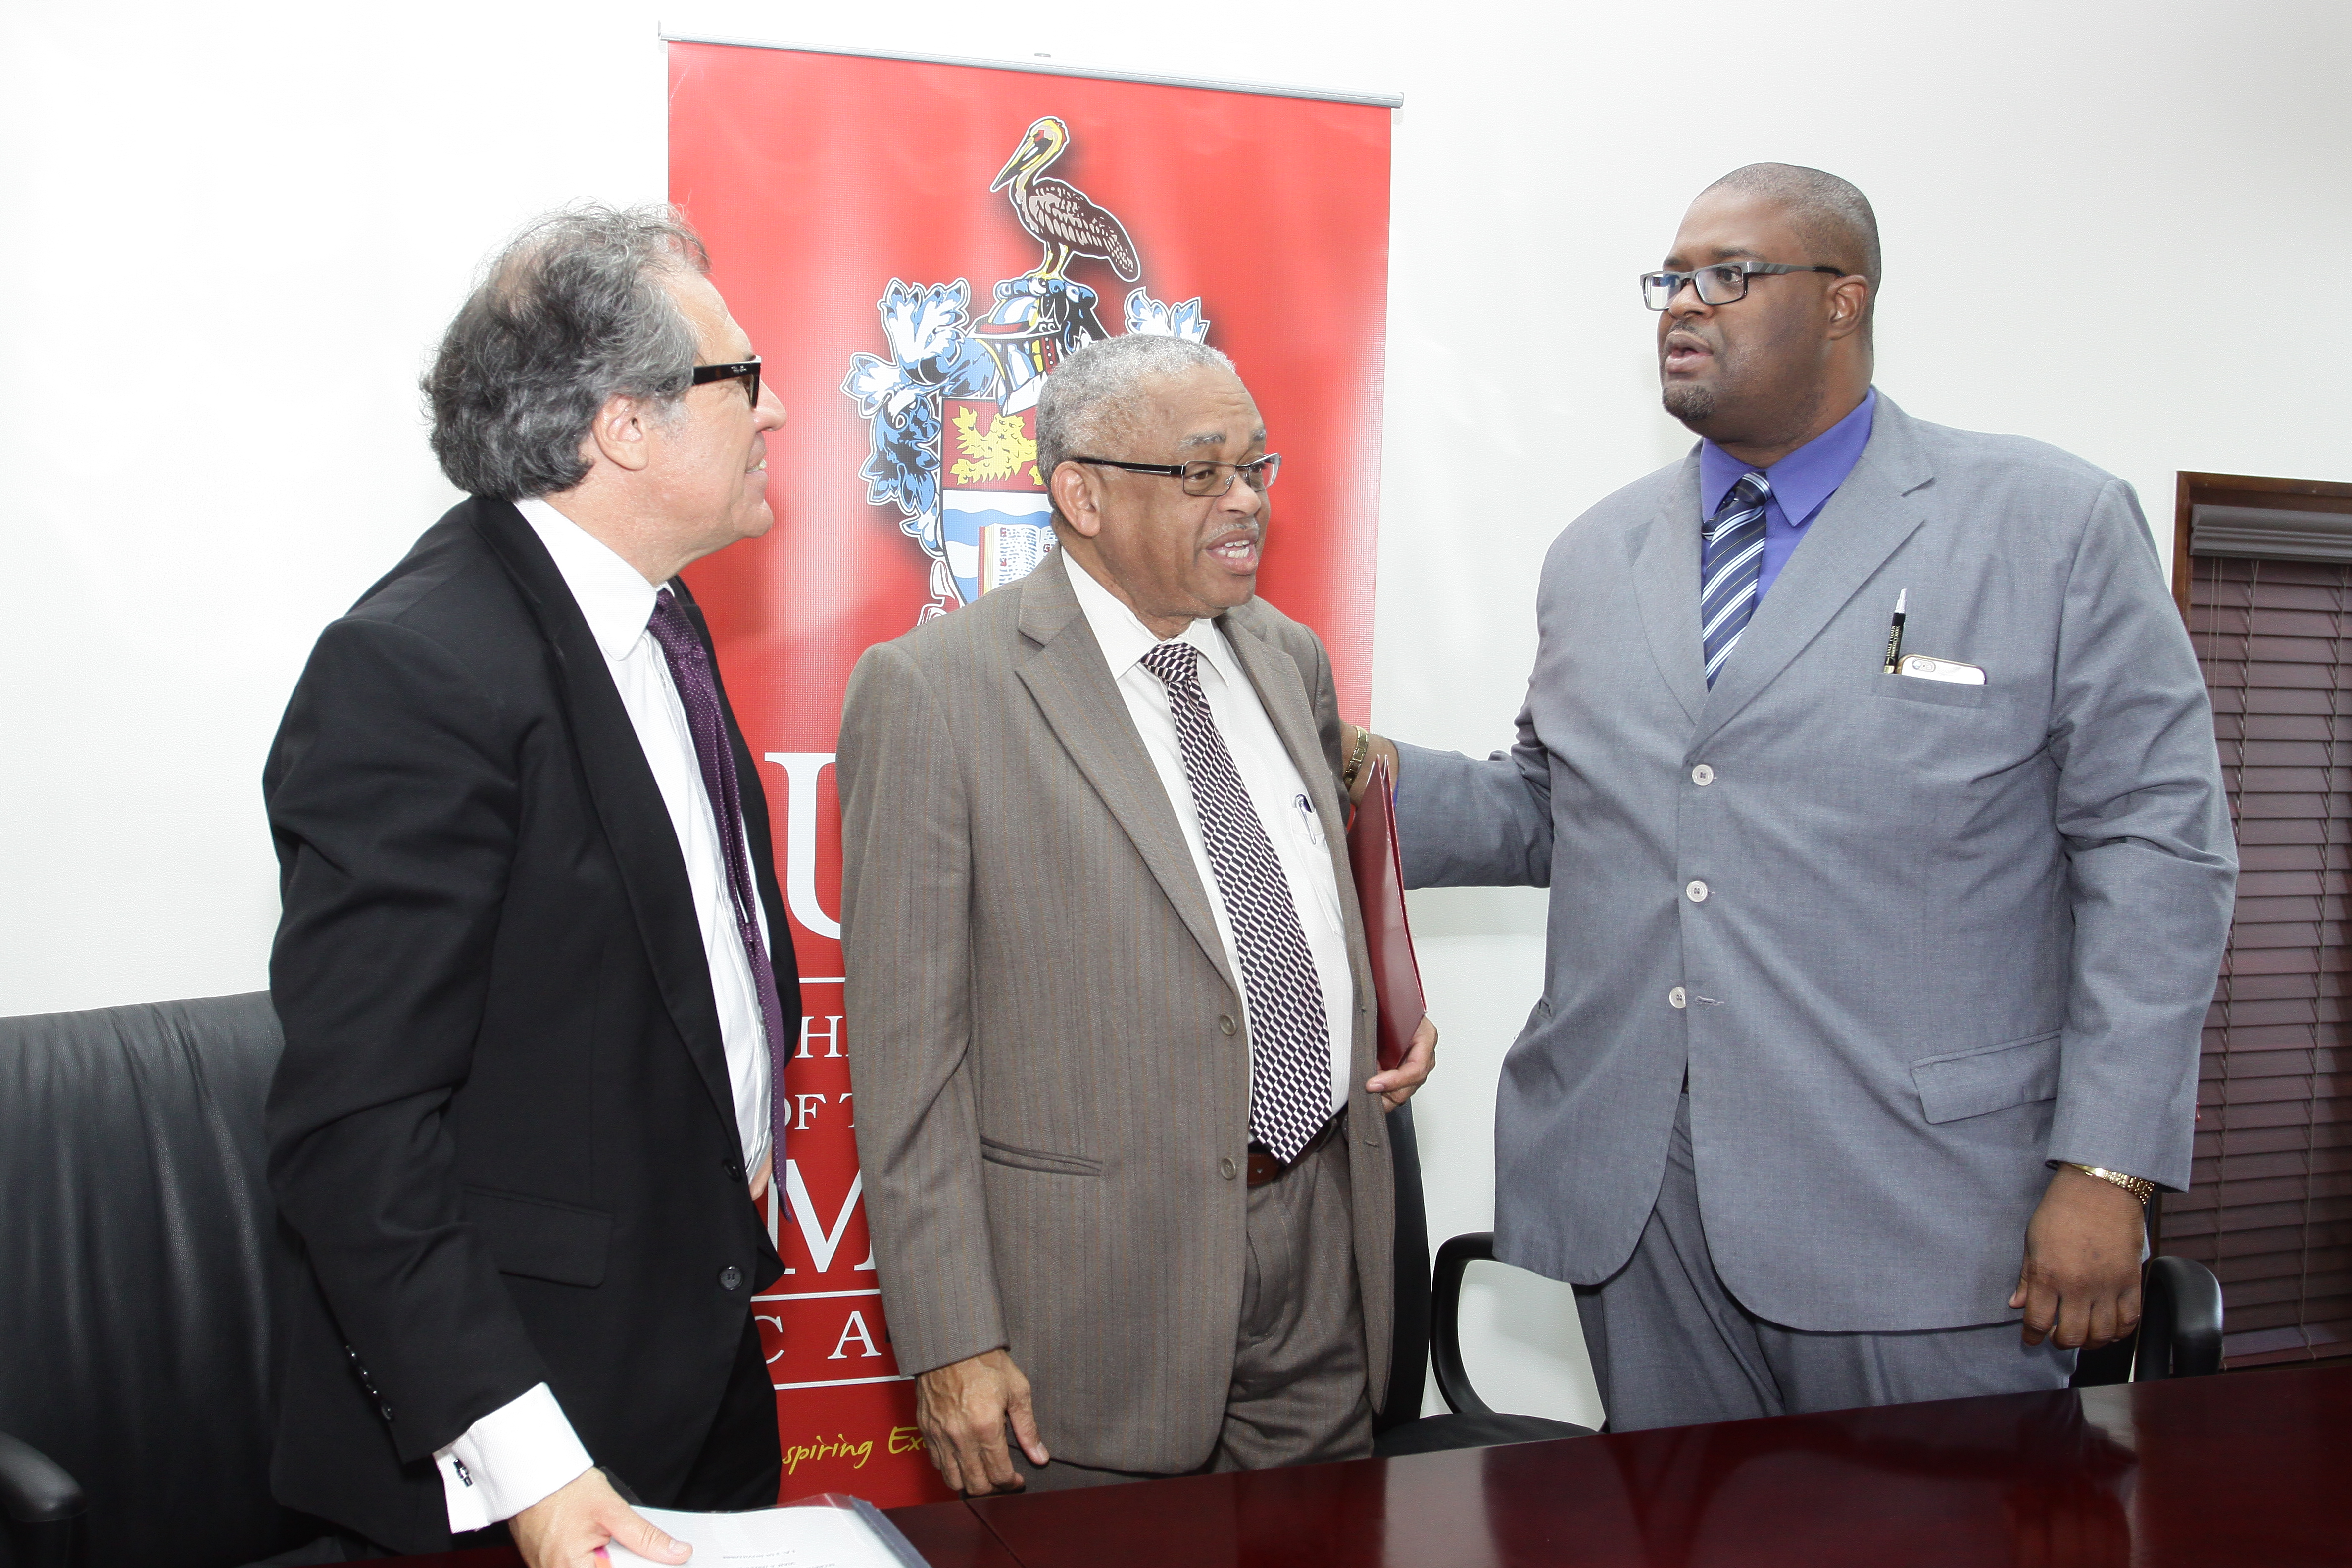 The OAS Secretary General and UWI, Mona Principal launching the OAS-UWI Partnership on Citizenship Education at the UWI Mona Campus